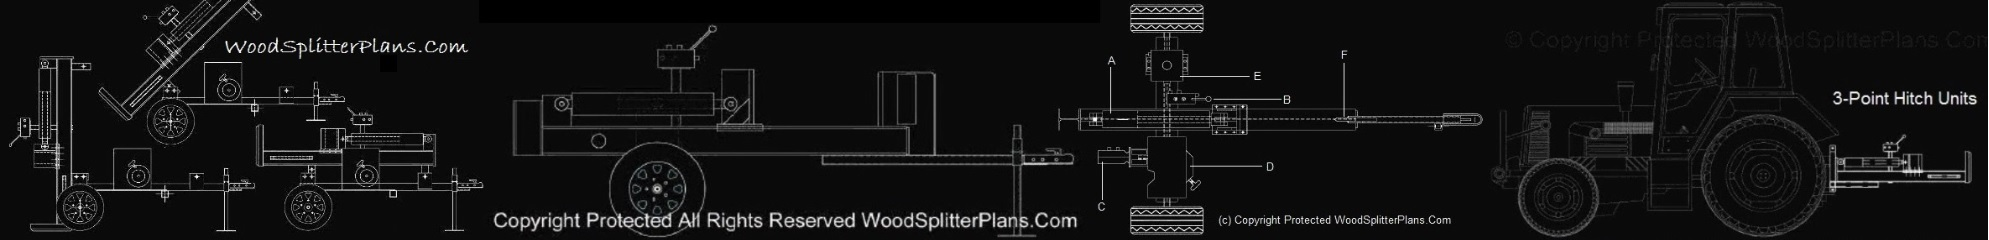 Wood Splitter Plans